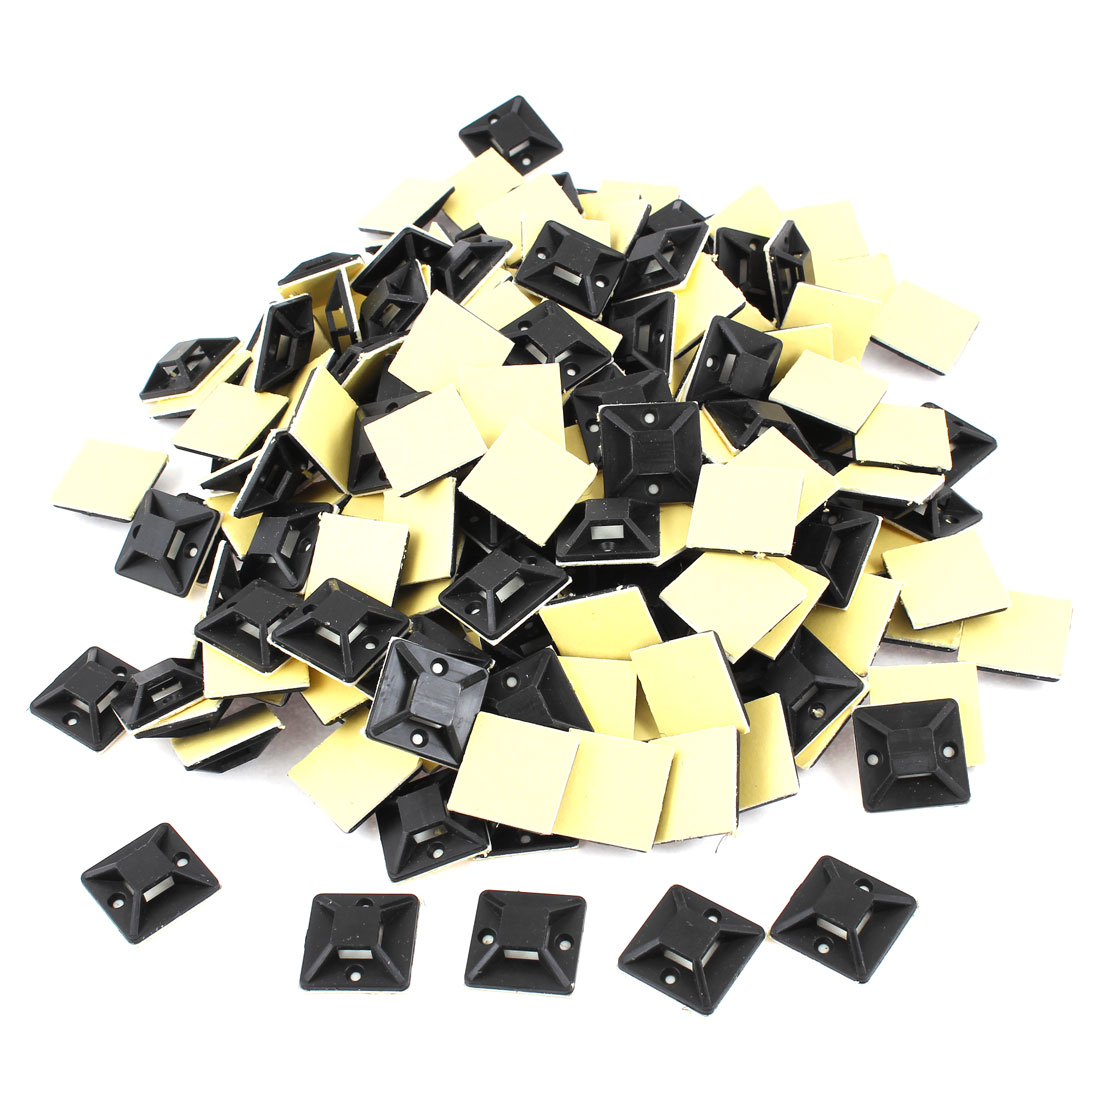 1000 Pcs Black Self Adhesive Cable Tie Mount Base 20mm x 20mm